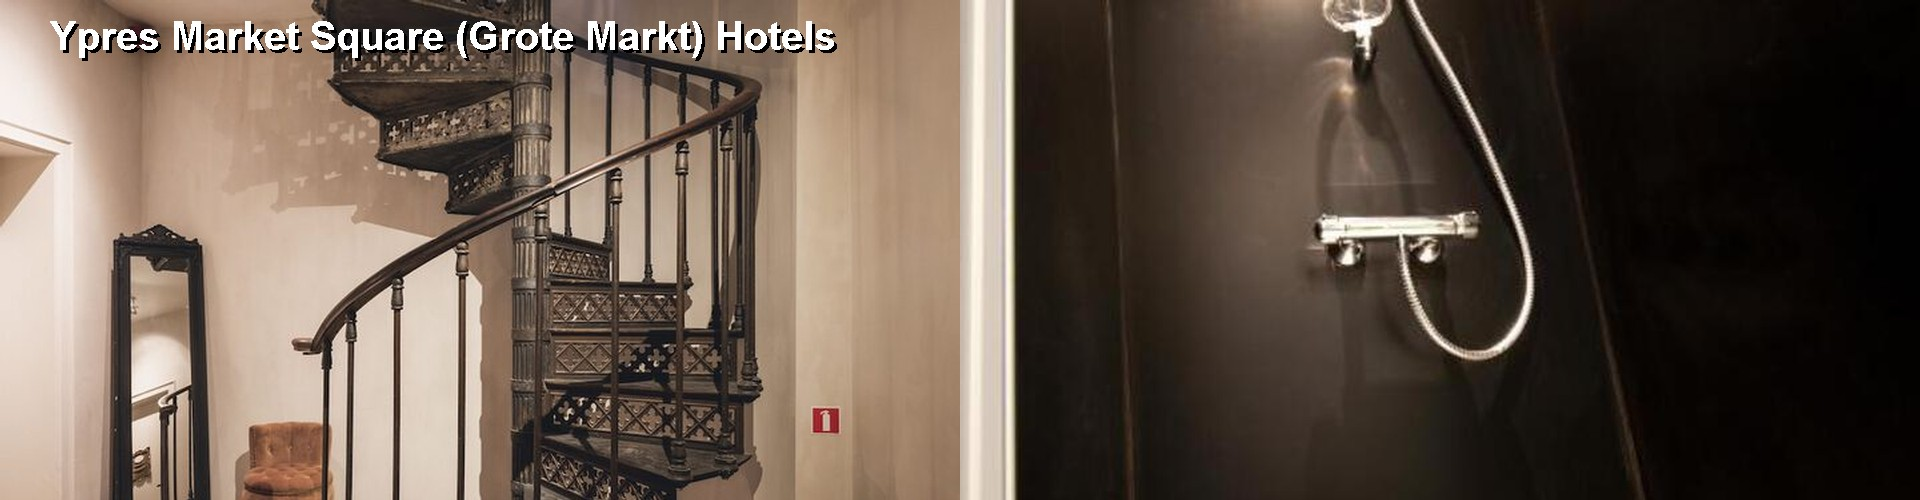 4 Best Hotels near Ypres Market Square (Grote Markt)